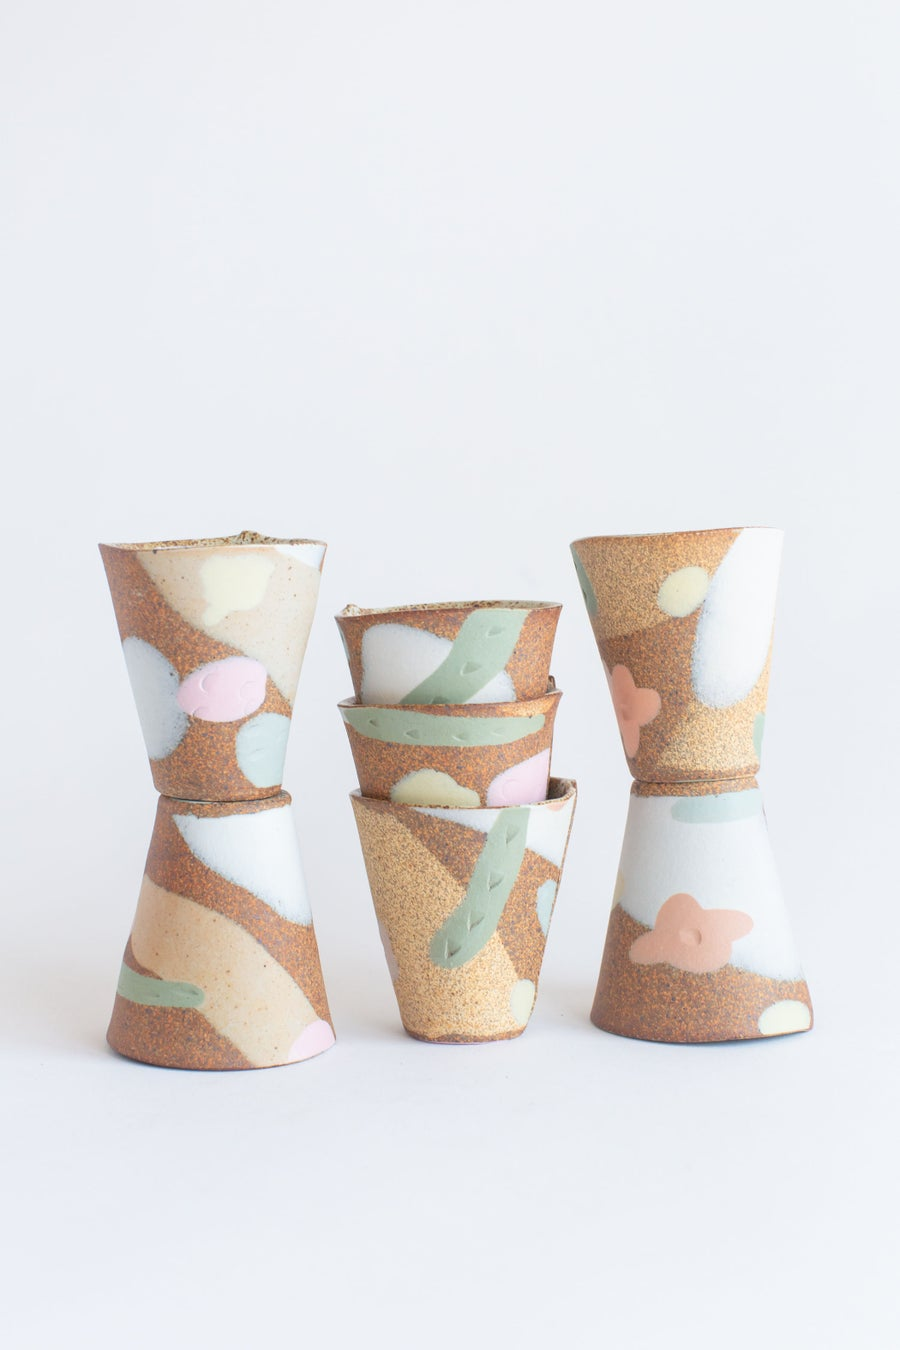 Image of Desert Sand, Peach Flowers and Sage Leaves - Tumbler